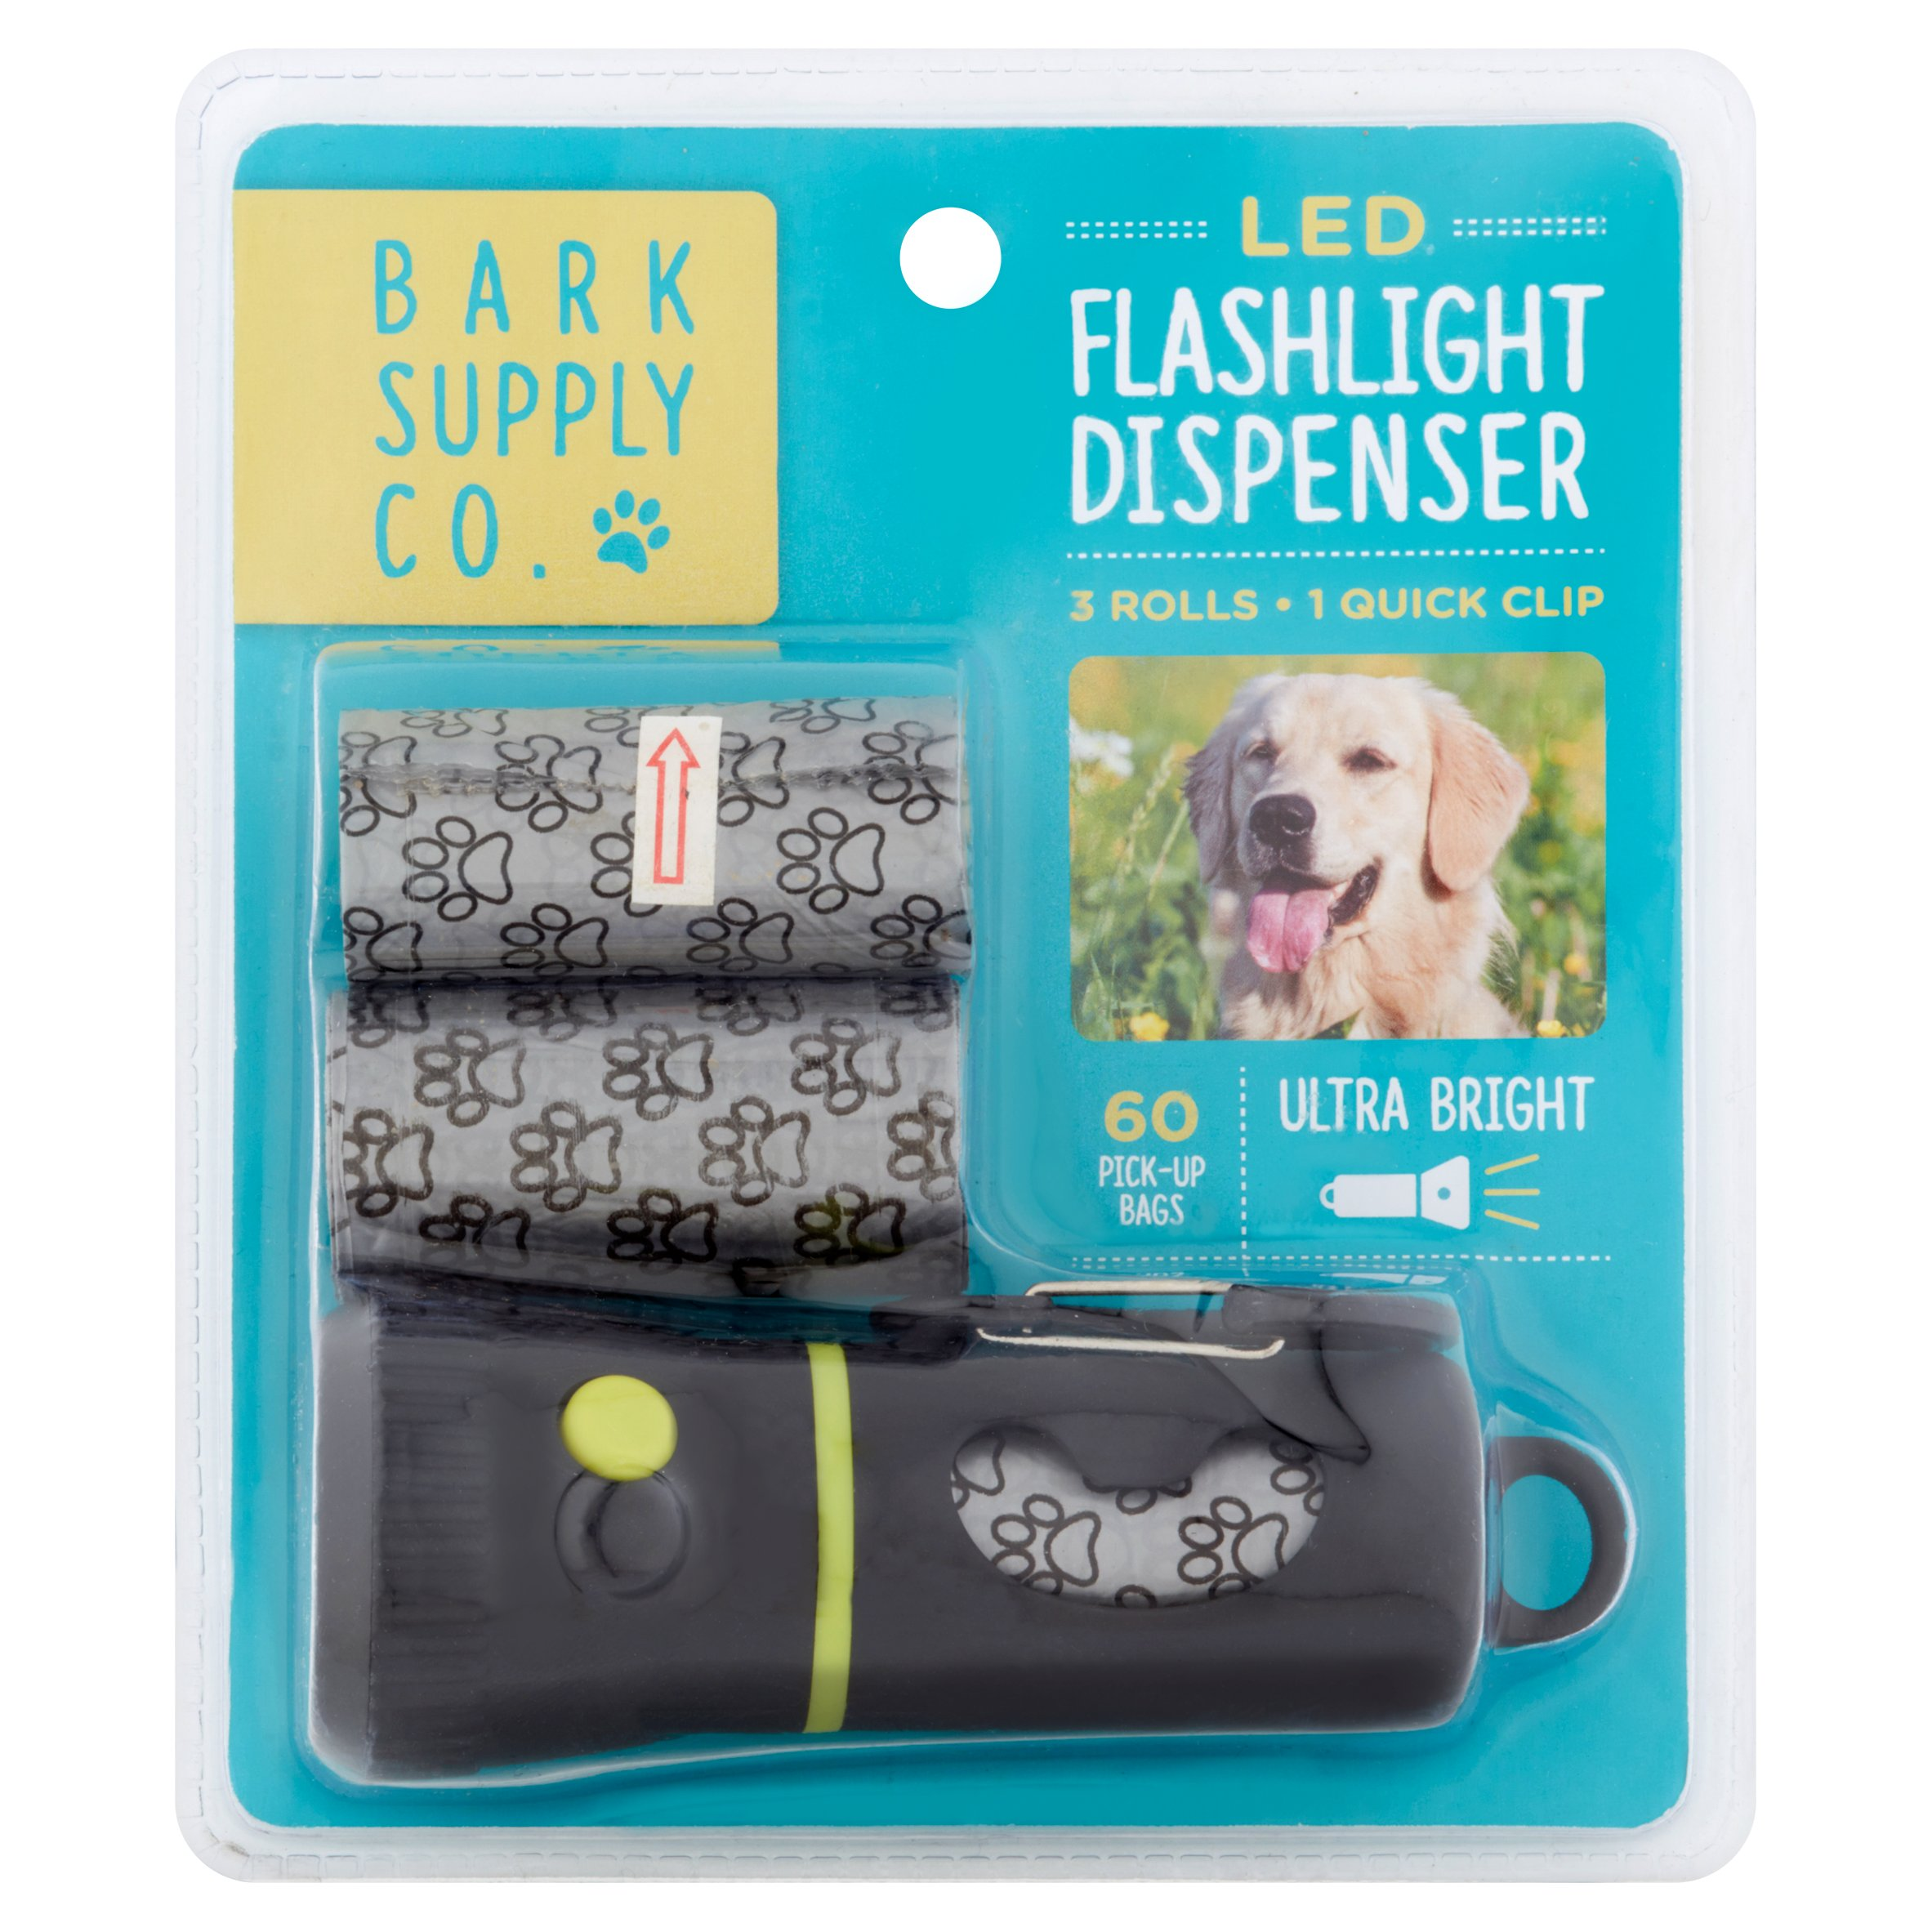 Poop Bags with LED Flashlight, 60 pick-up poop bags, Bark Supply Co. w  2  Refill Poop Bag - Walmart.com cfa7eb99a2